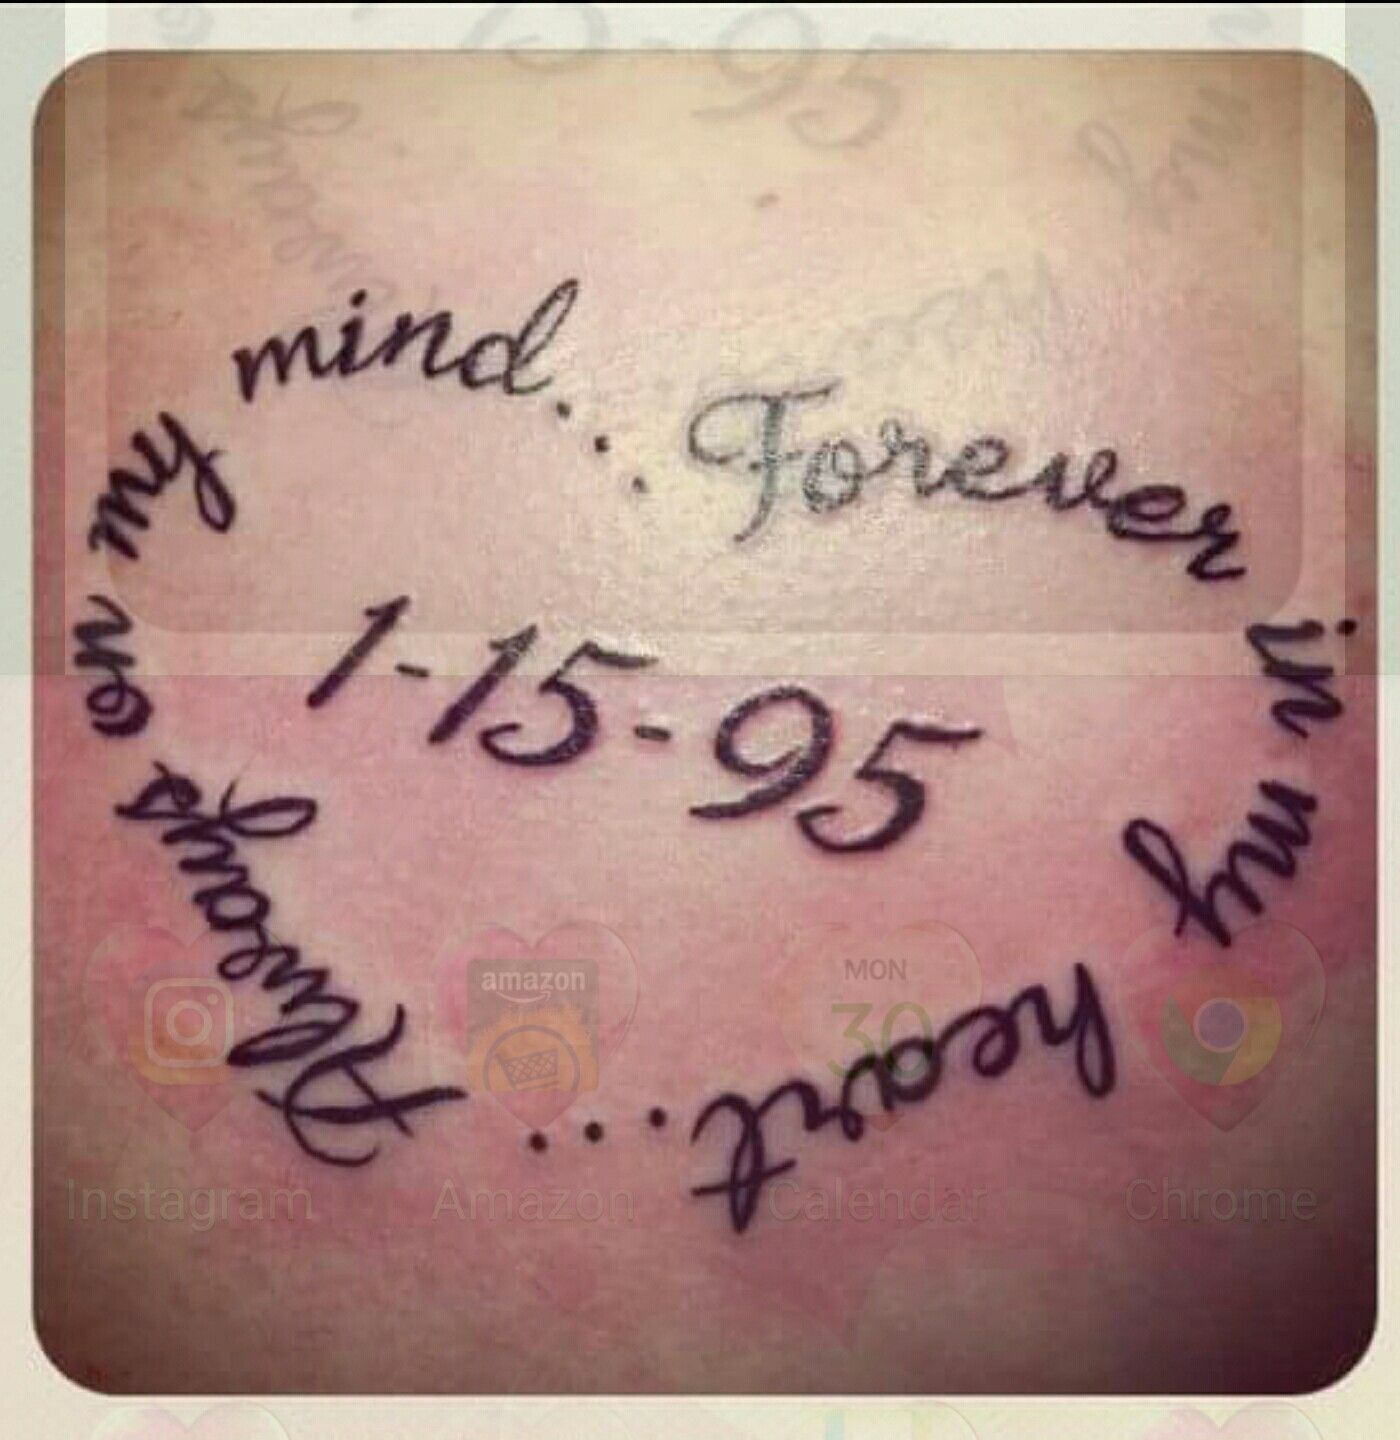 In Memory Of Loved Ones Quotes Pinnicole Graham On Terrific Tattoos  Pinterest  Tattos And